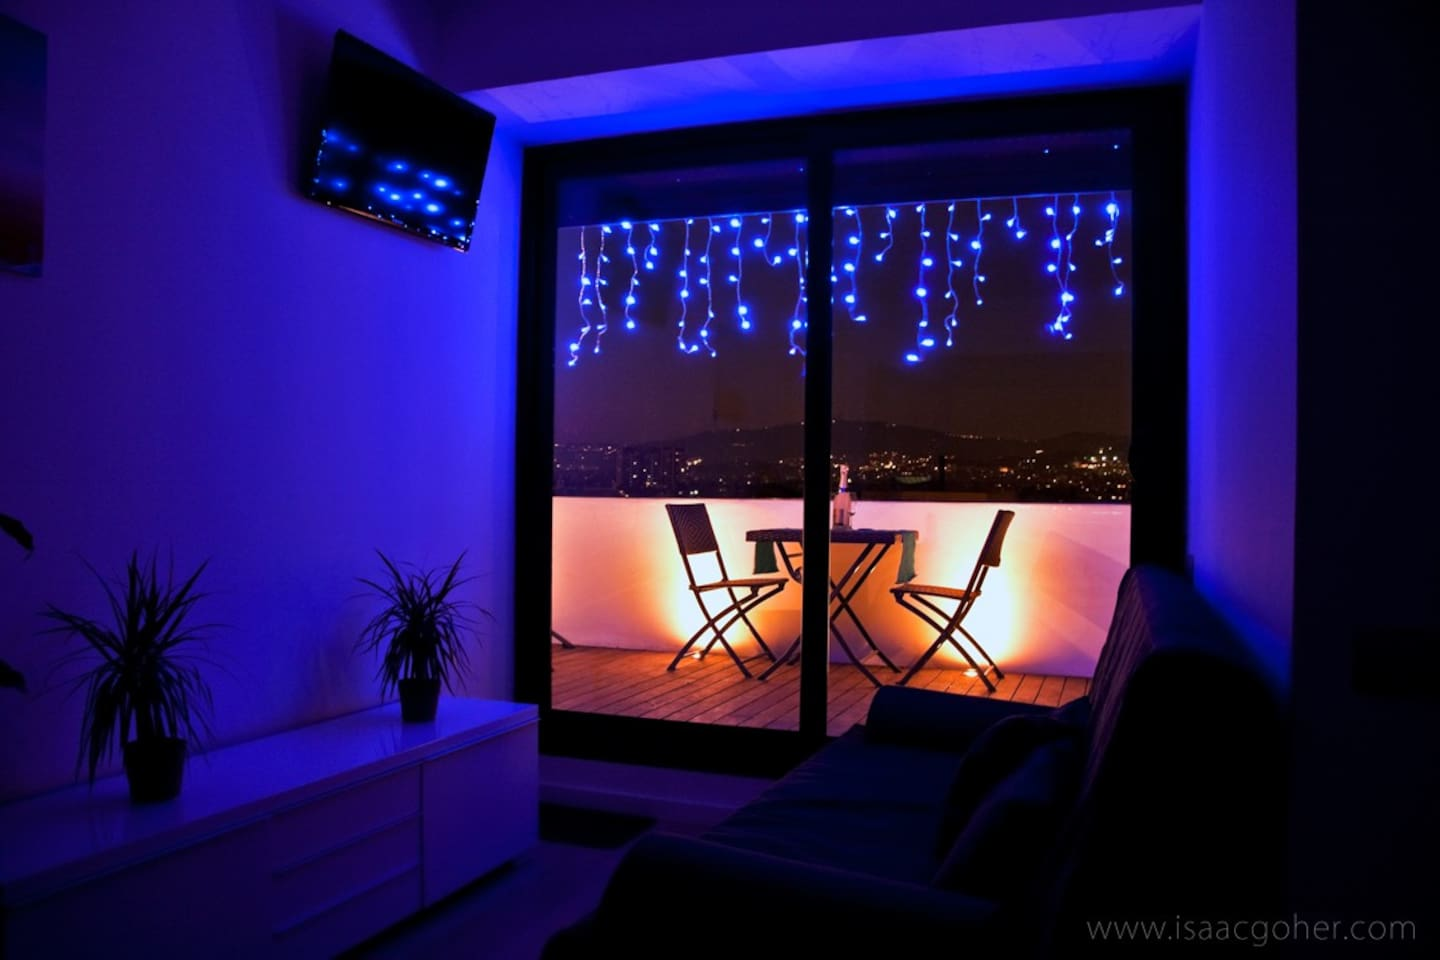 LIVING ROOM NIGHT VIEW